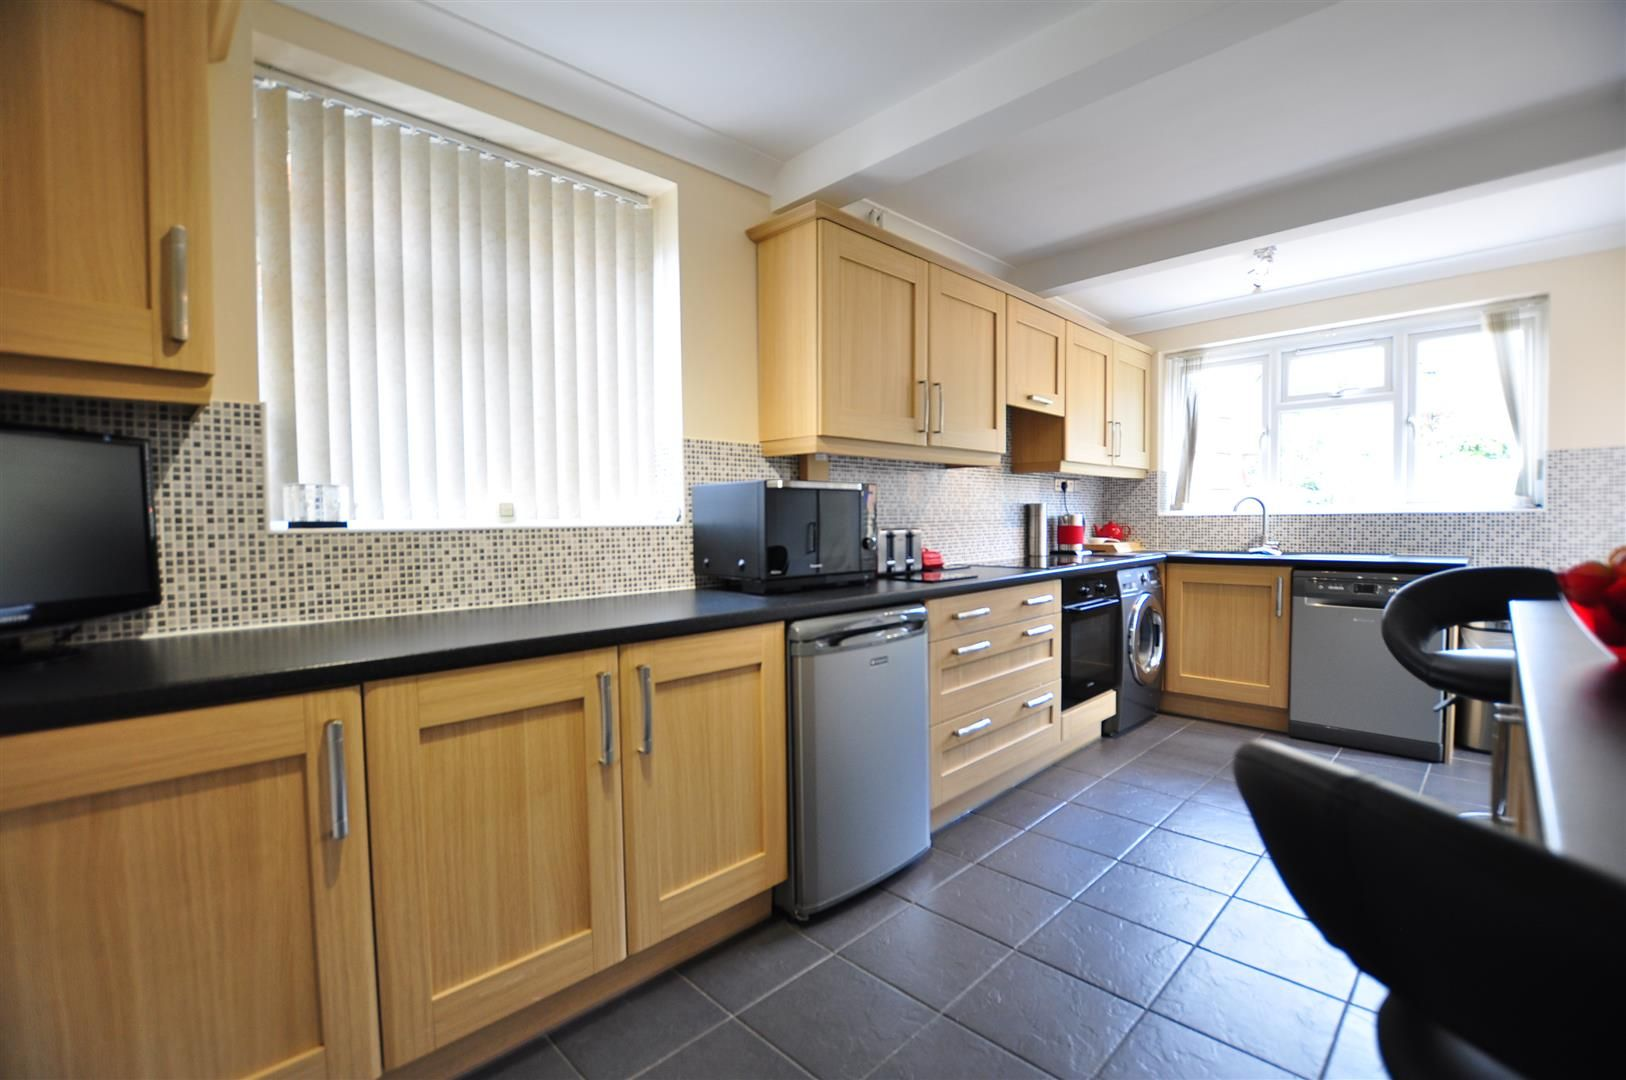 3 bed semi-detached for sale in Lower Gornal  - Property Image 2